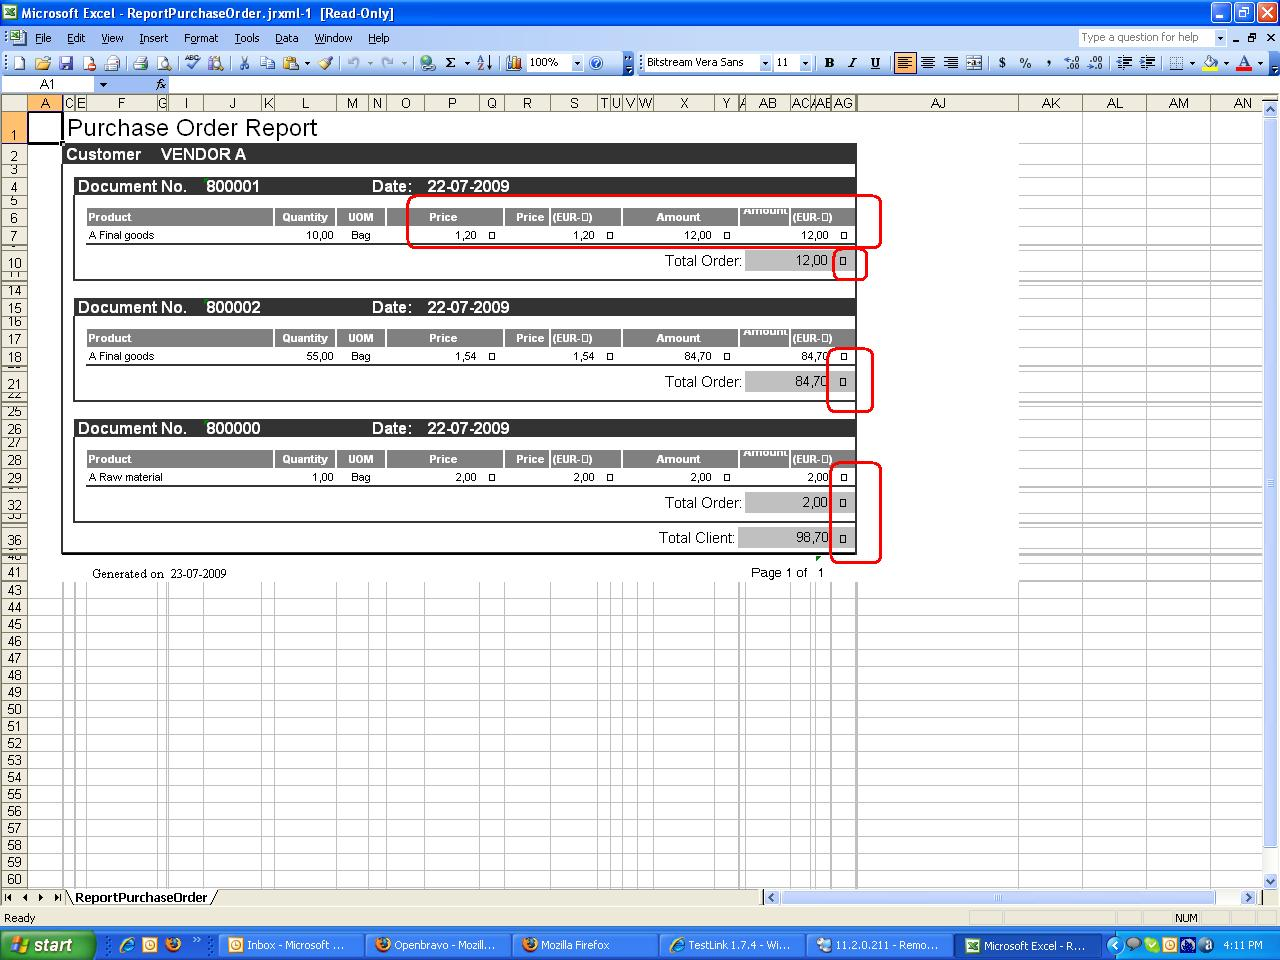 0010016 Euro Symbol Looks Strange In Purchase Order Report Excel